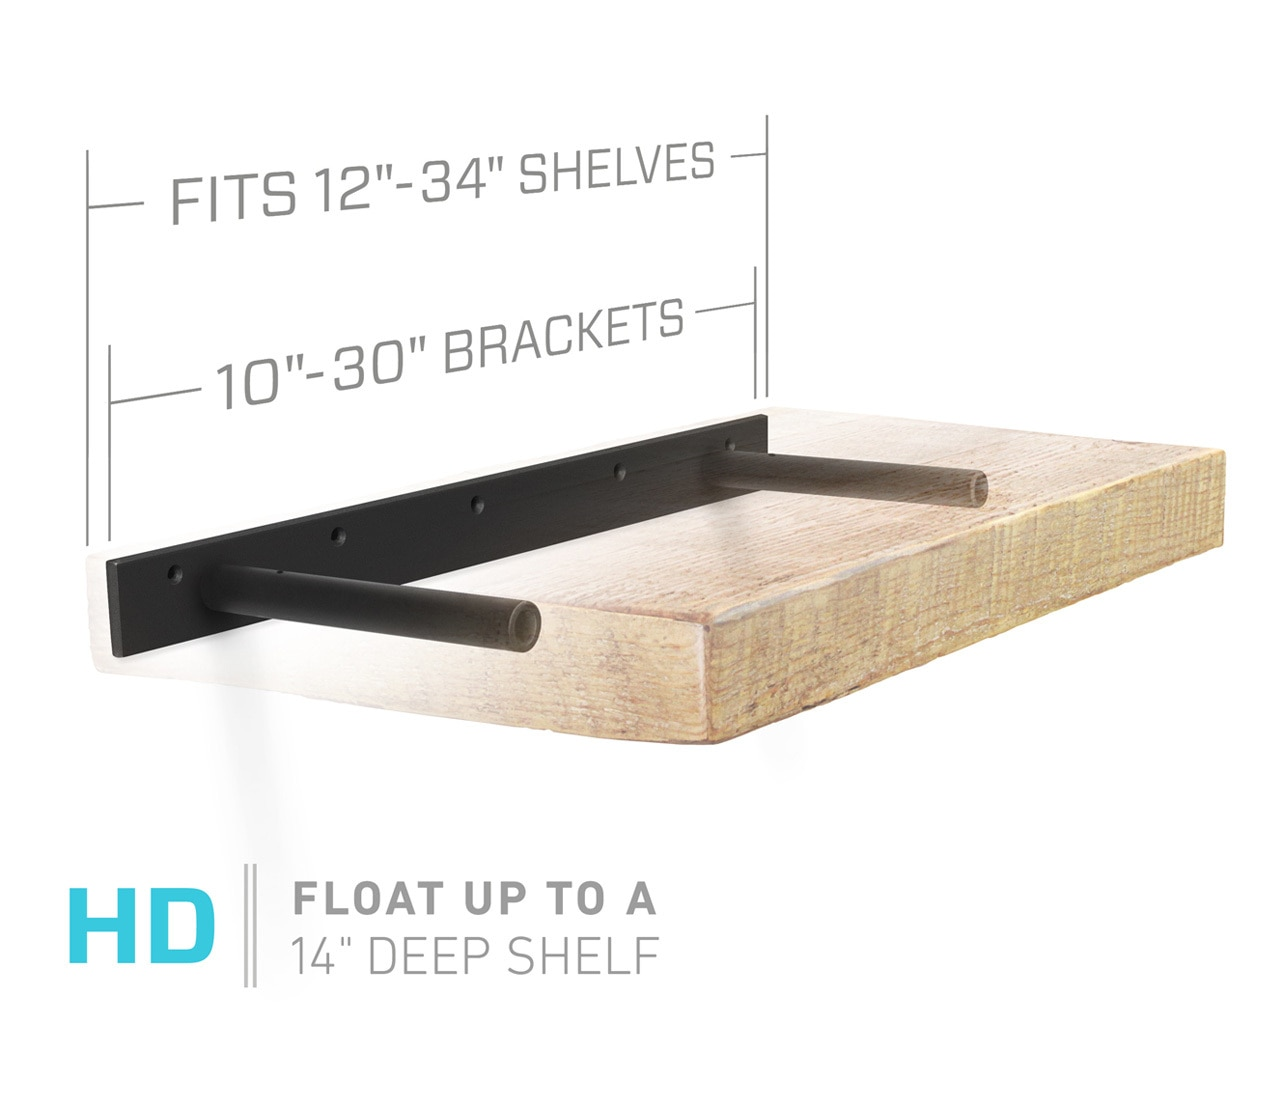 floating shelf bracket fits inch shelves brackets for our heavy duty two bar float deep open pipe shelving small oak kitchen island fancy wooden hafele hidden tall mitre mega